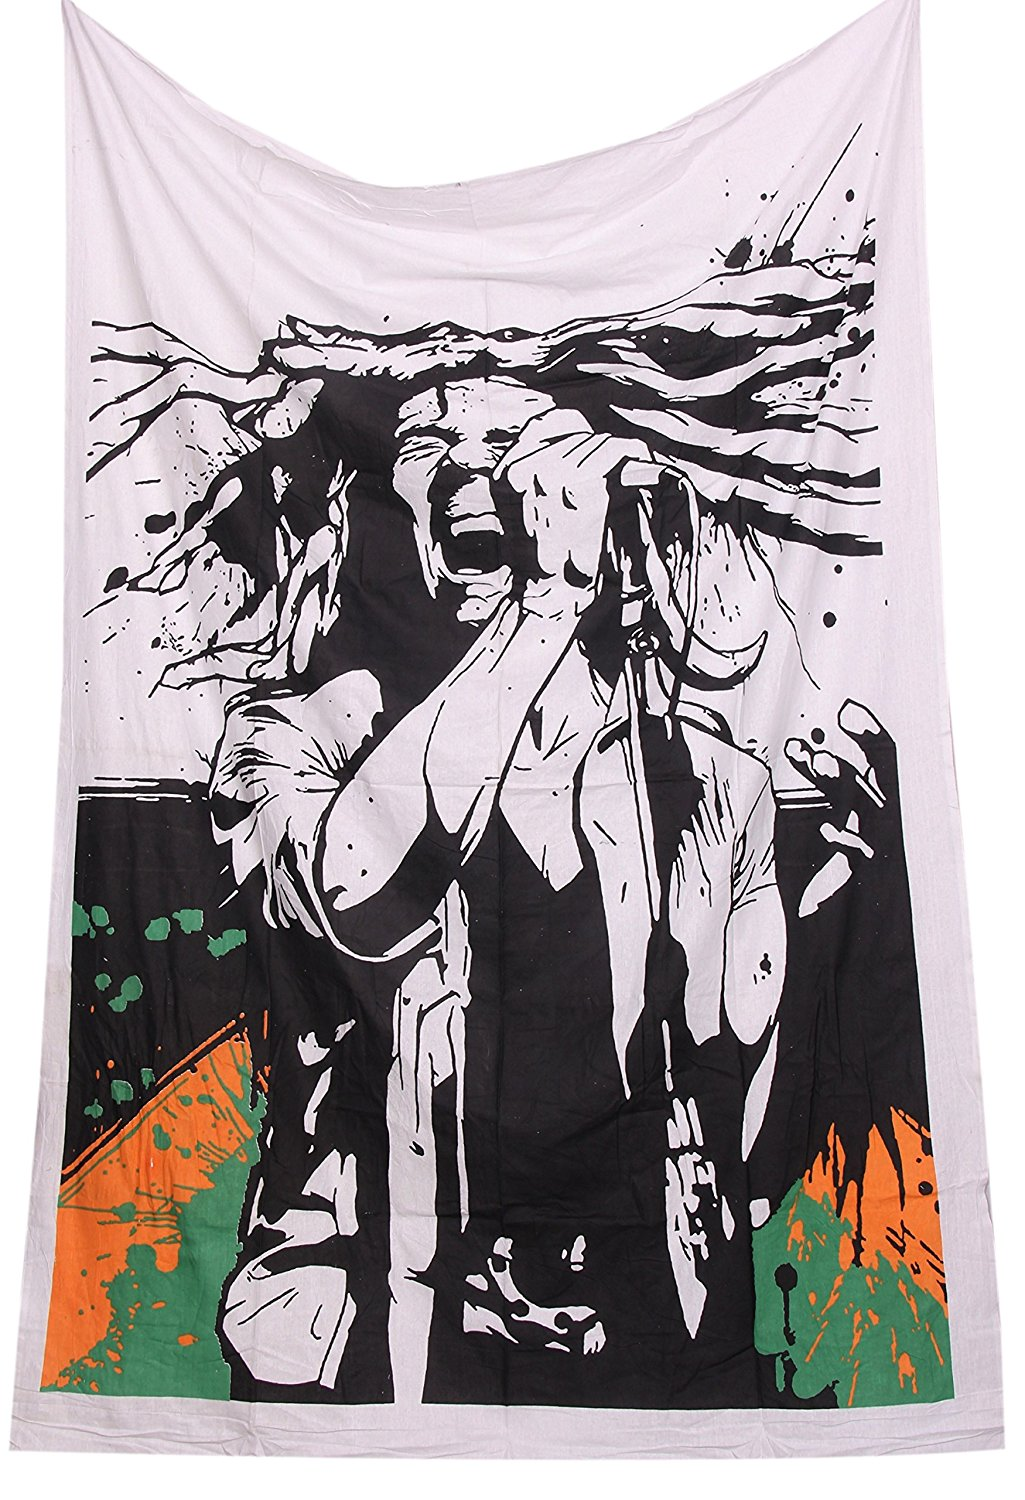 ONE LOVE Bob Marley Tapestry Wall Hanging Rasta, Reggae Tapestries and wall hangings hippy hippie Tapestry Beach Cotton Cotton Dorm Decor